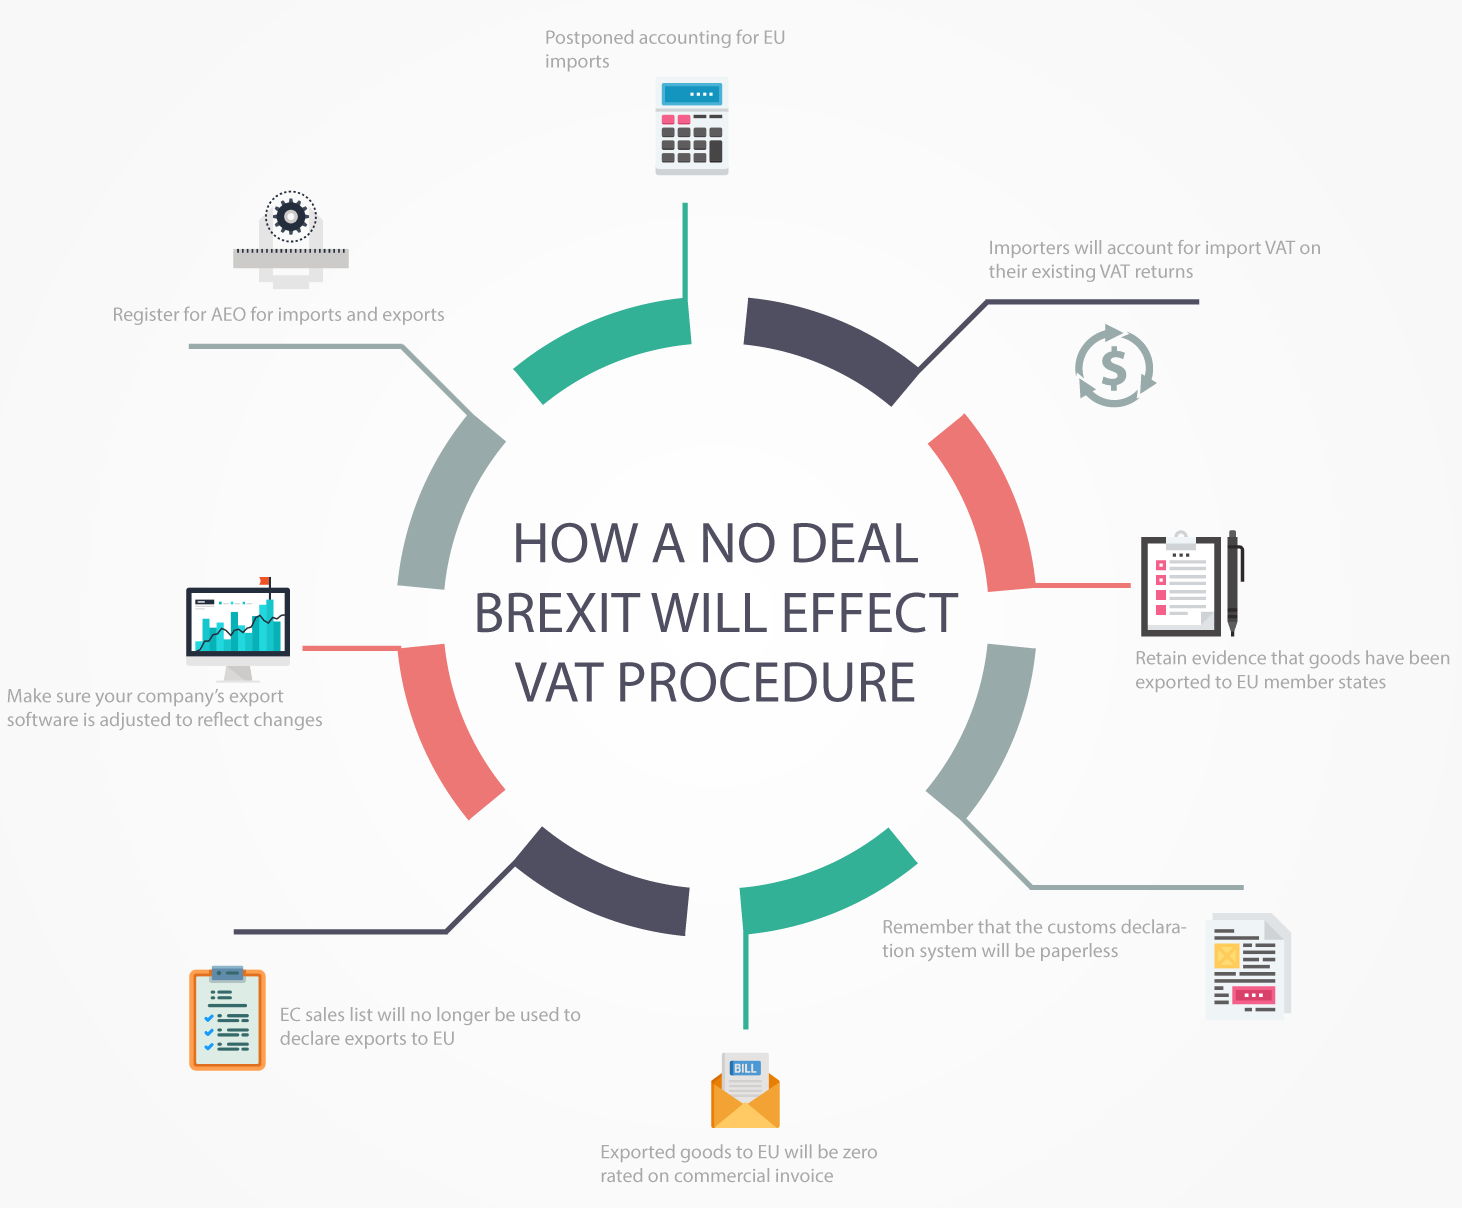 No Deal Brexit and VAT Procedure